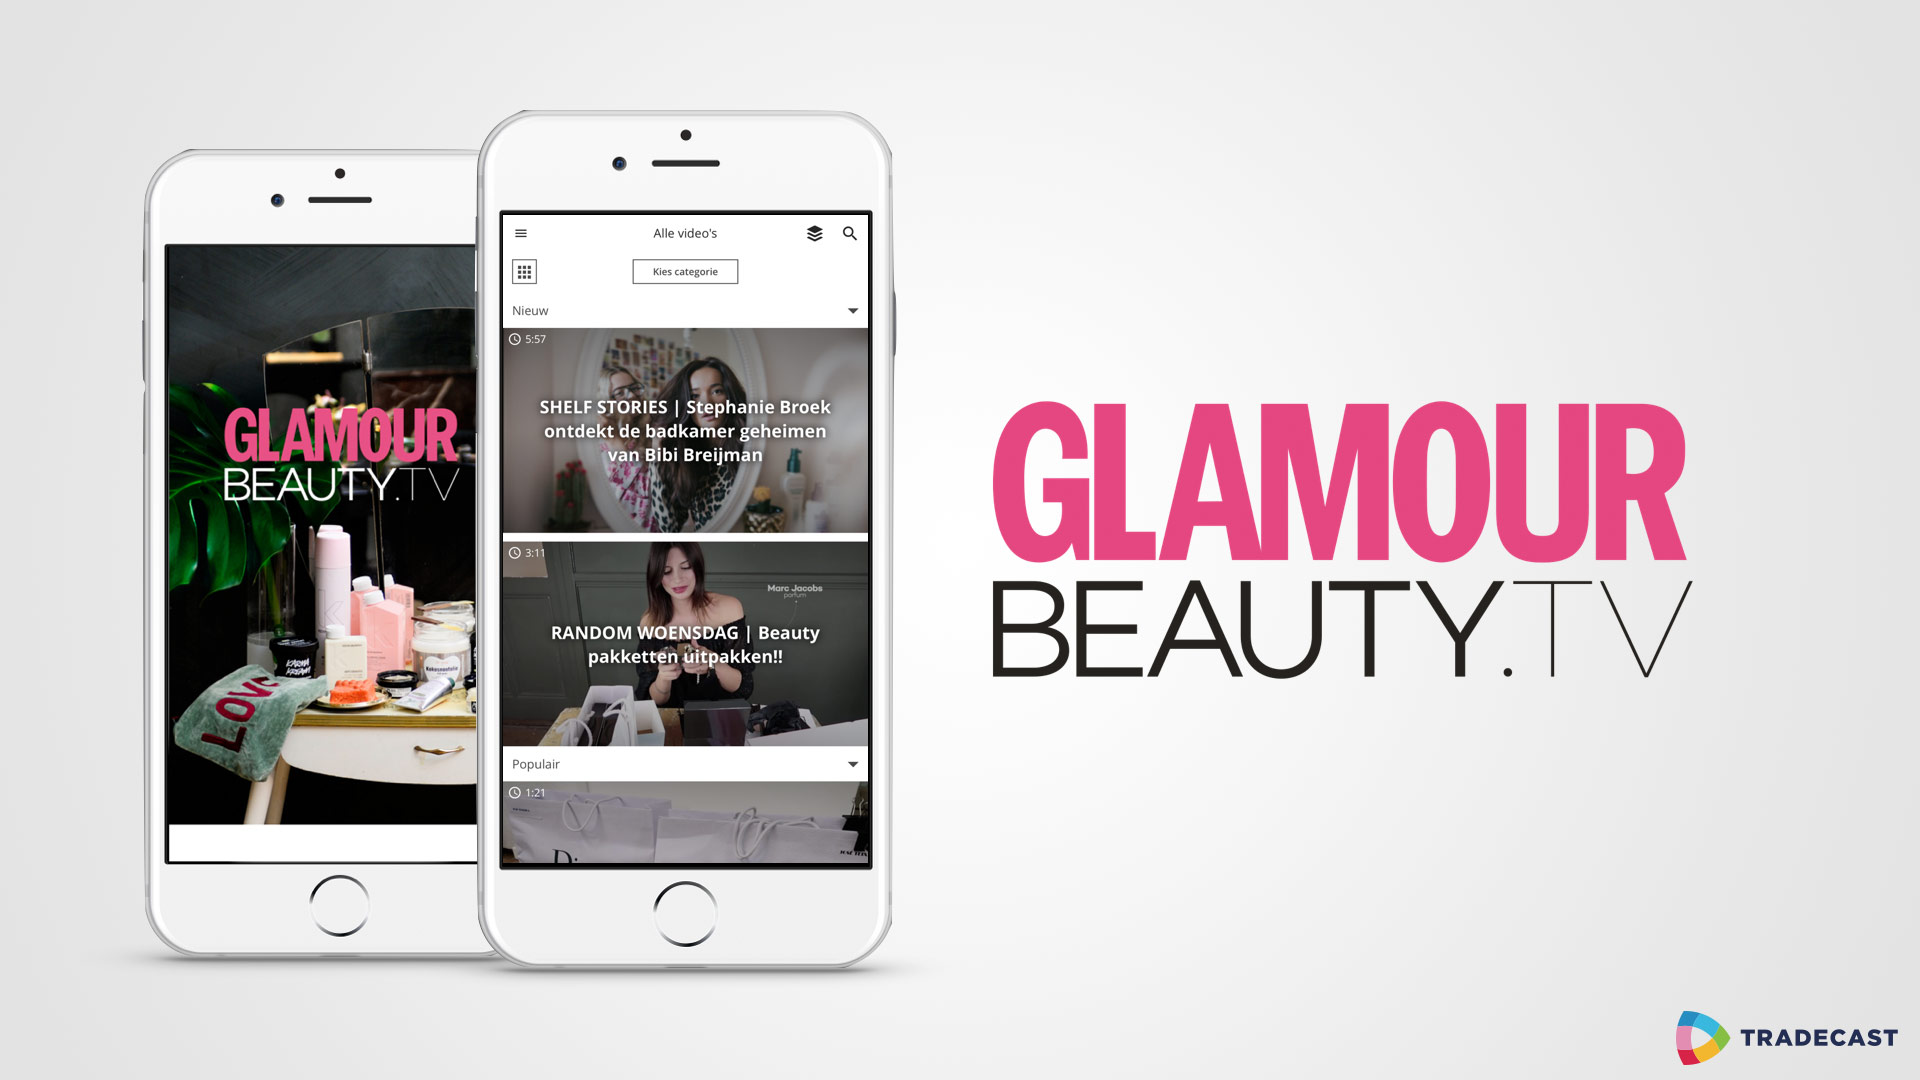 Glamour and TradeCast launch Glamour Beauty TV